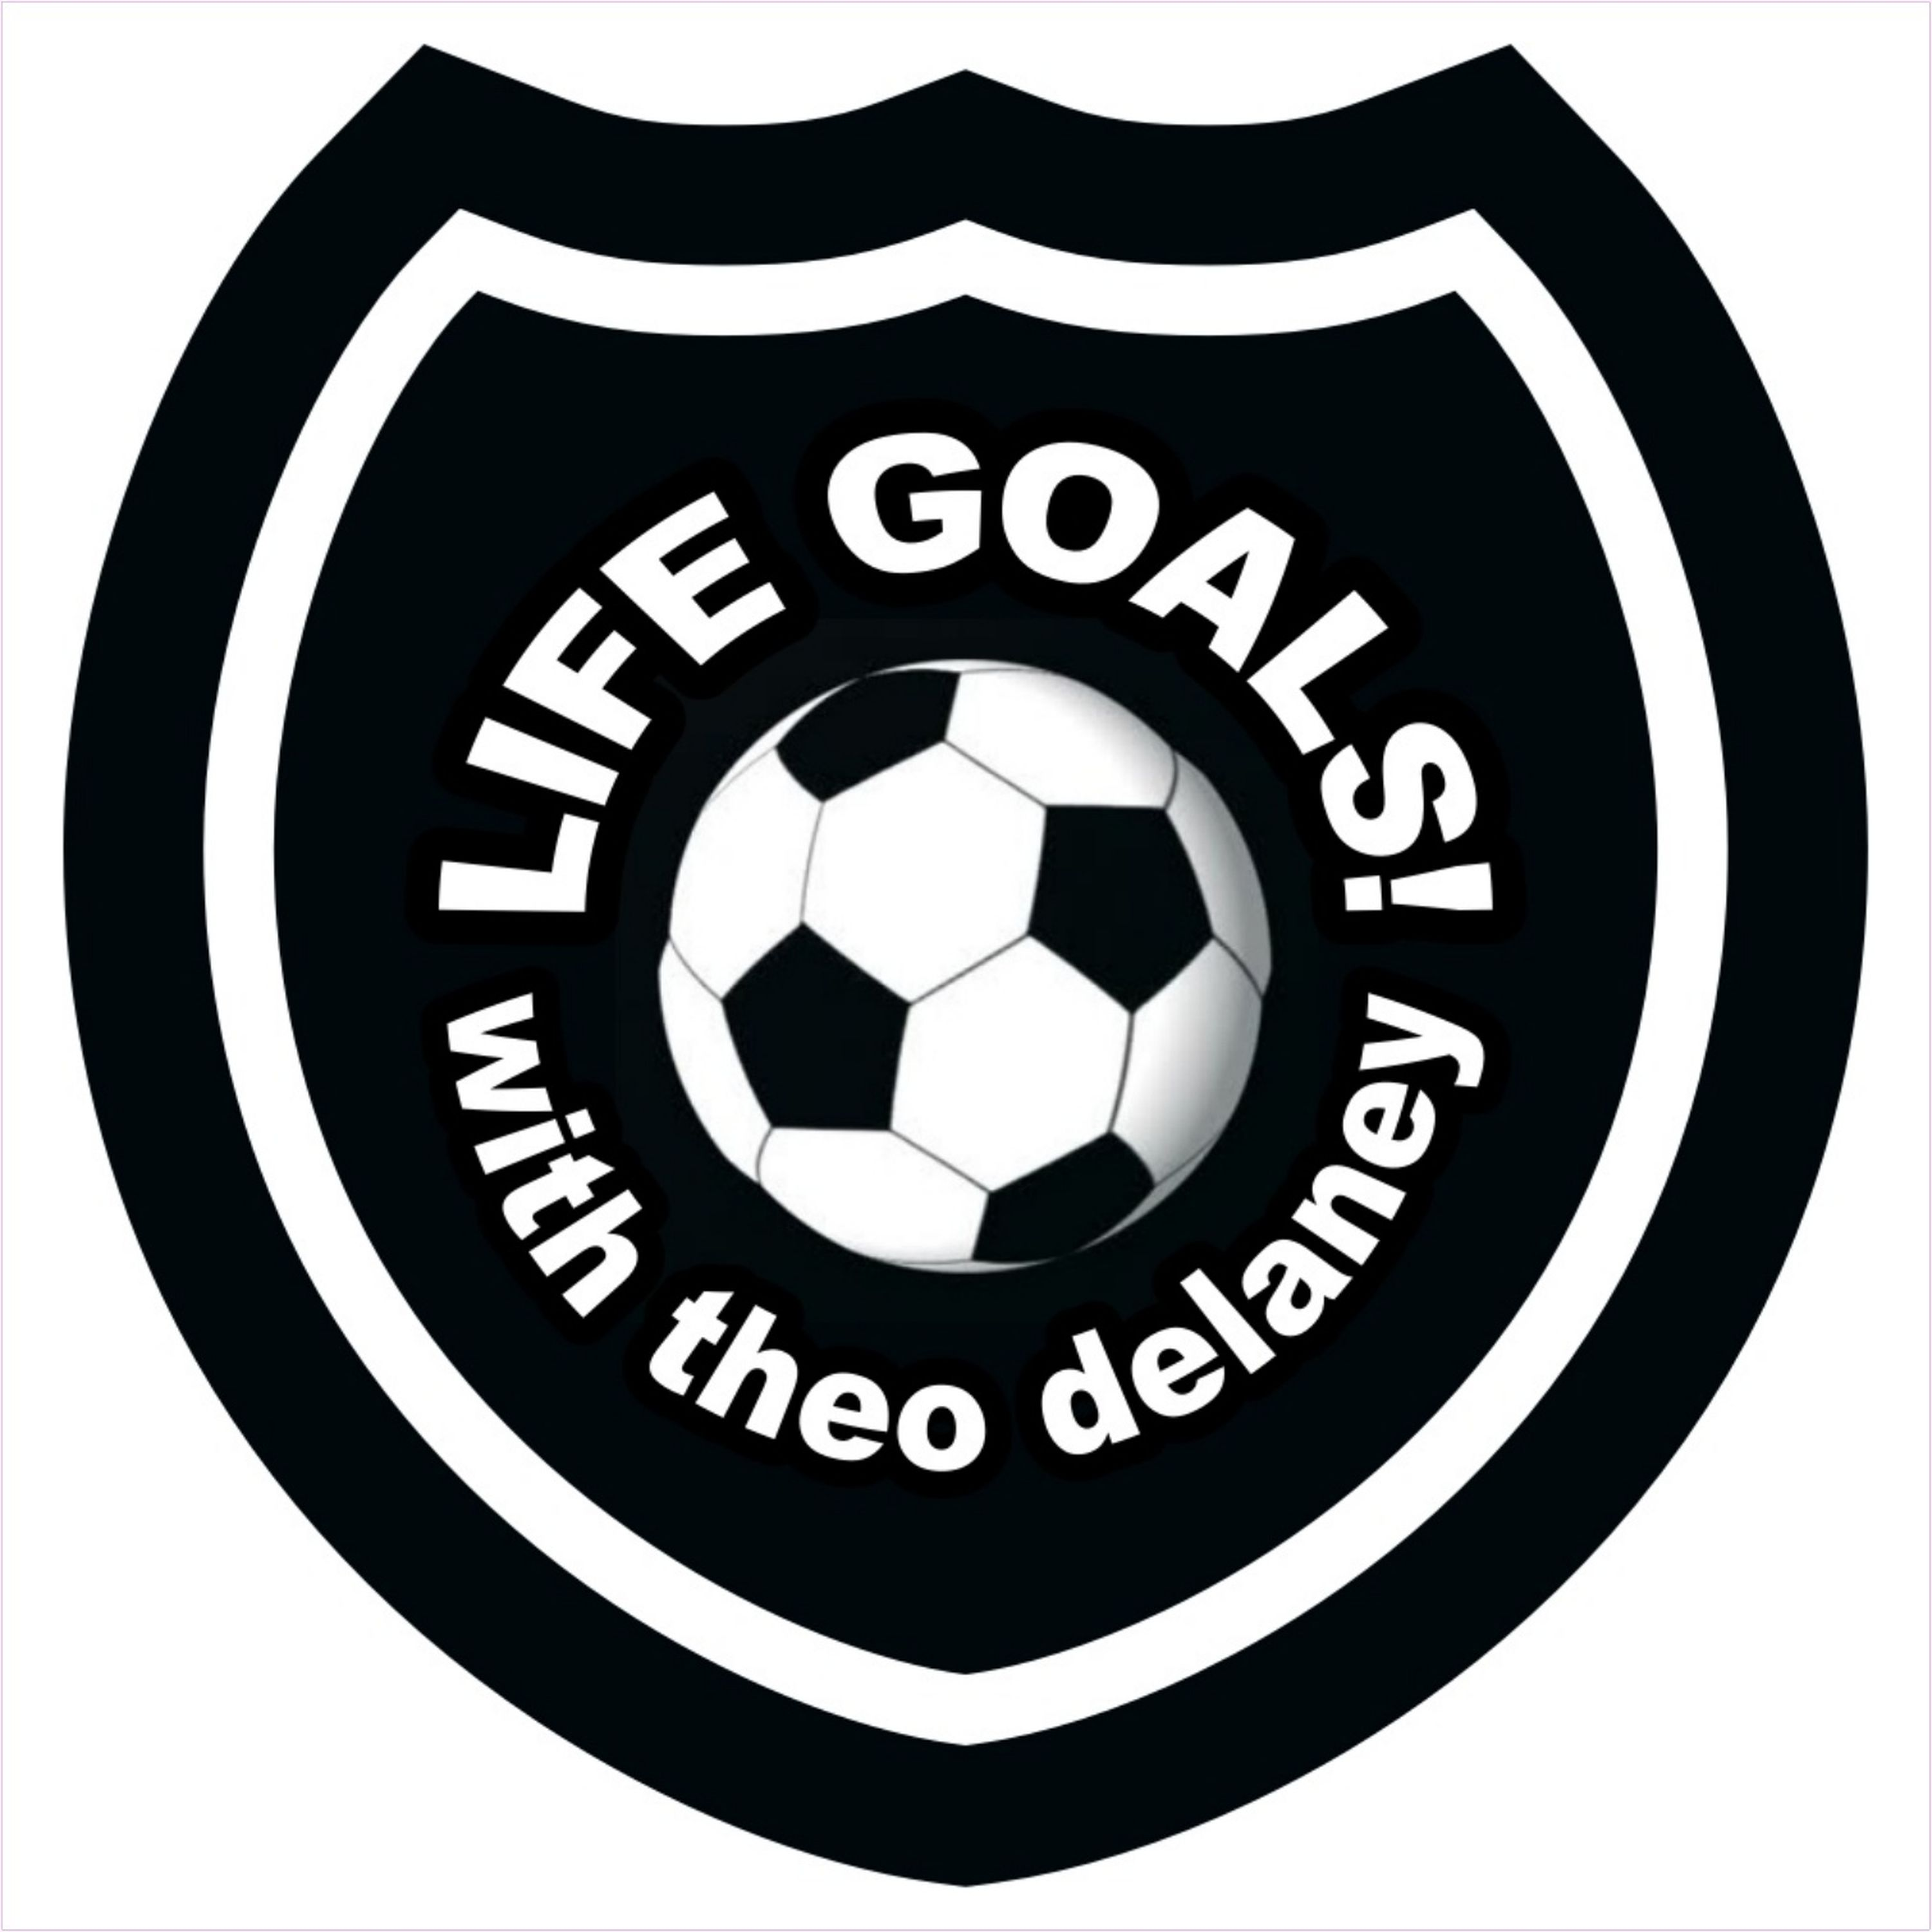 Life Goals with Theo Delaney - Julie Welch